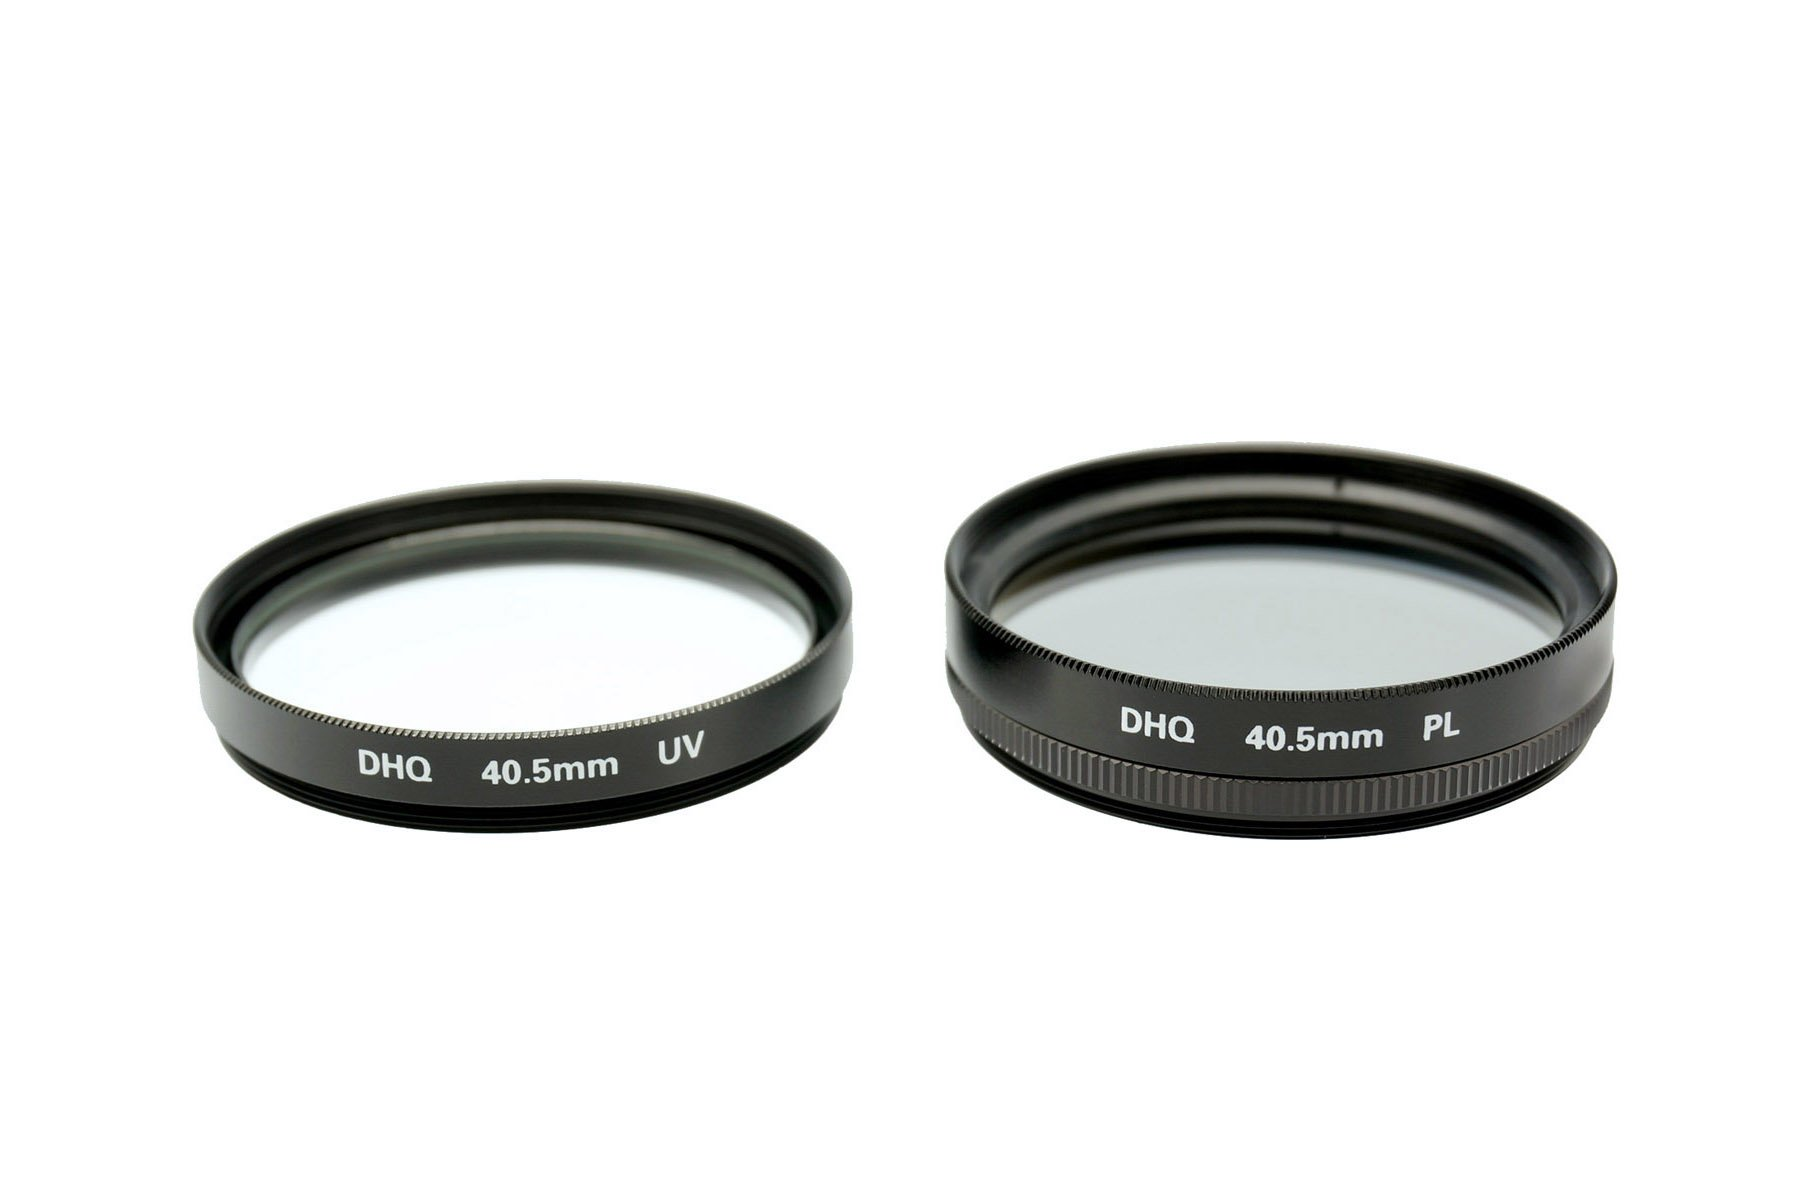 Lens Fujiyama 58mm UV PL Filters for Panasonic LUMIX G VARIO 1:3.5-5.6 // 12-60 ASPH POWER O.I.S